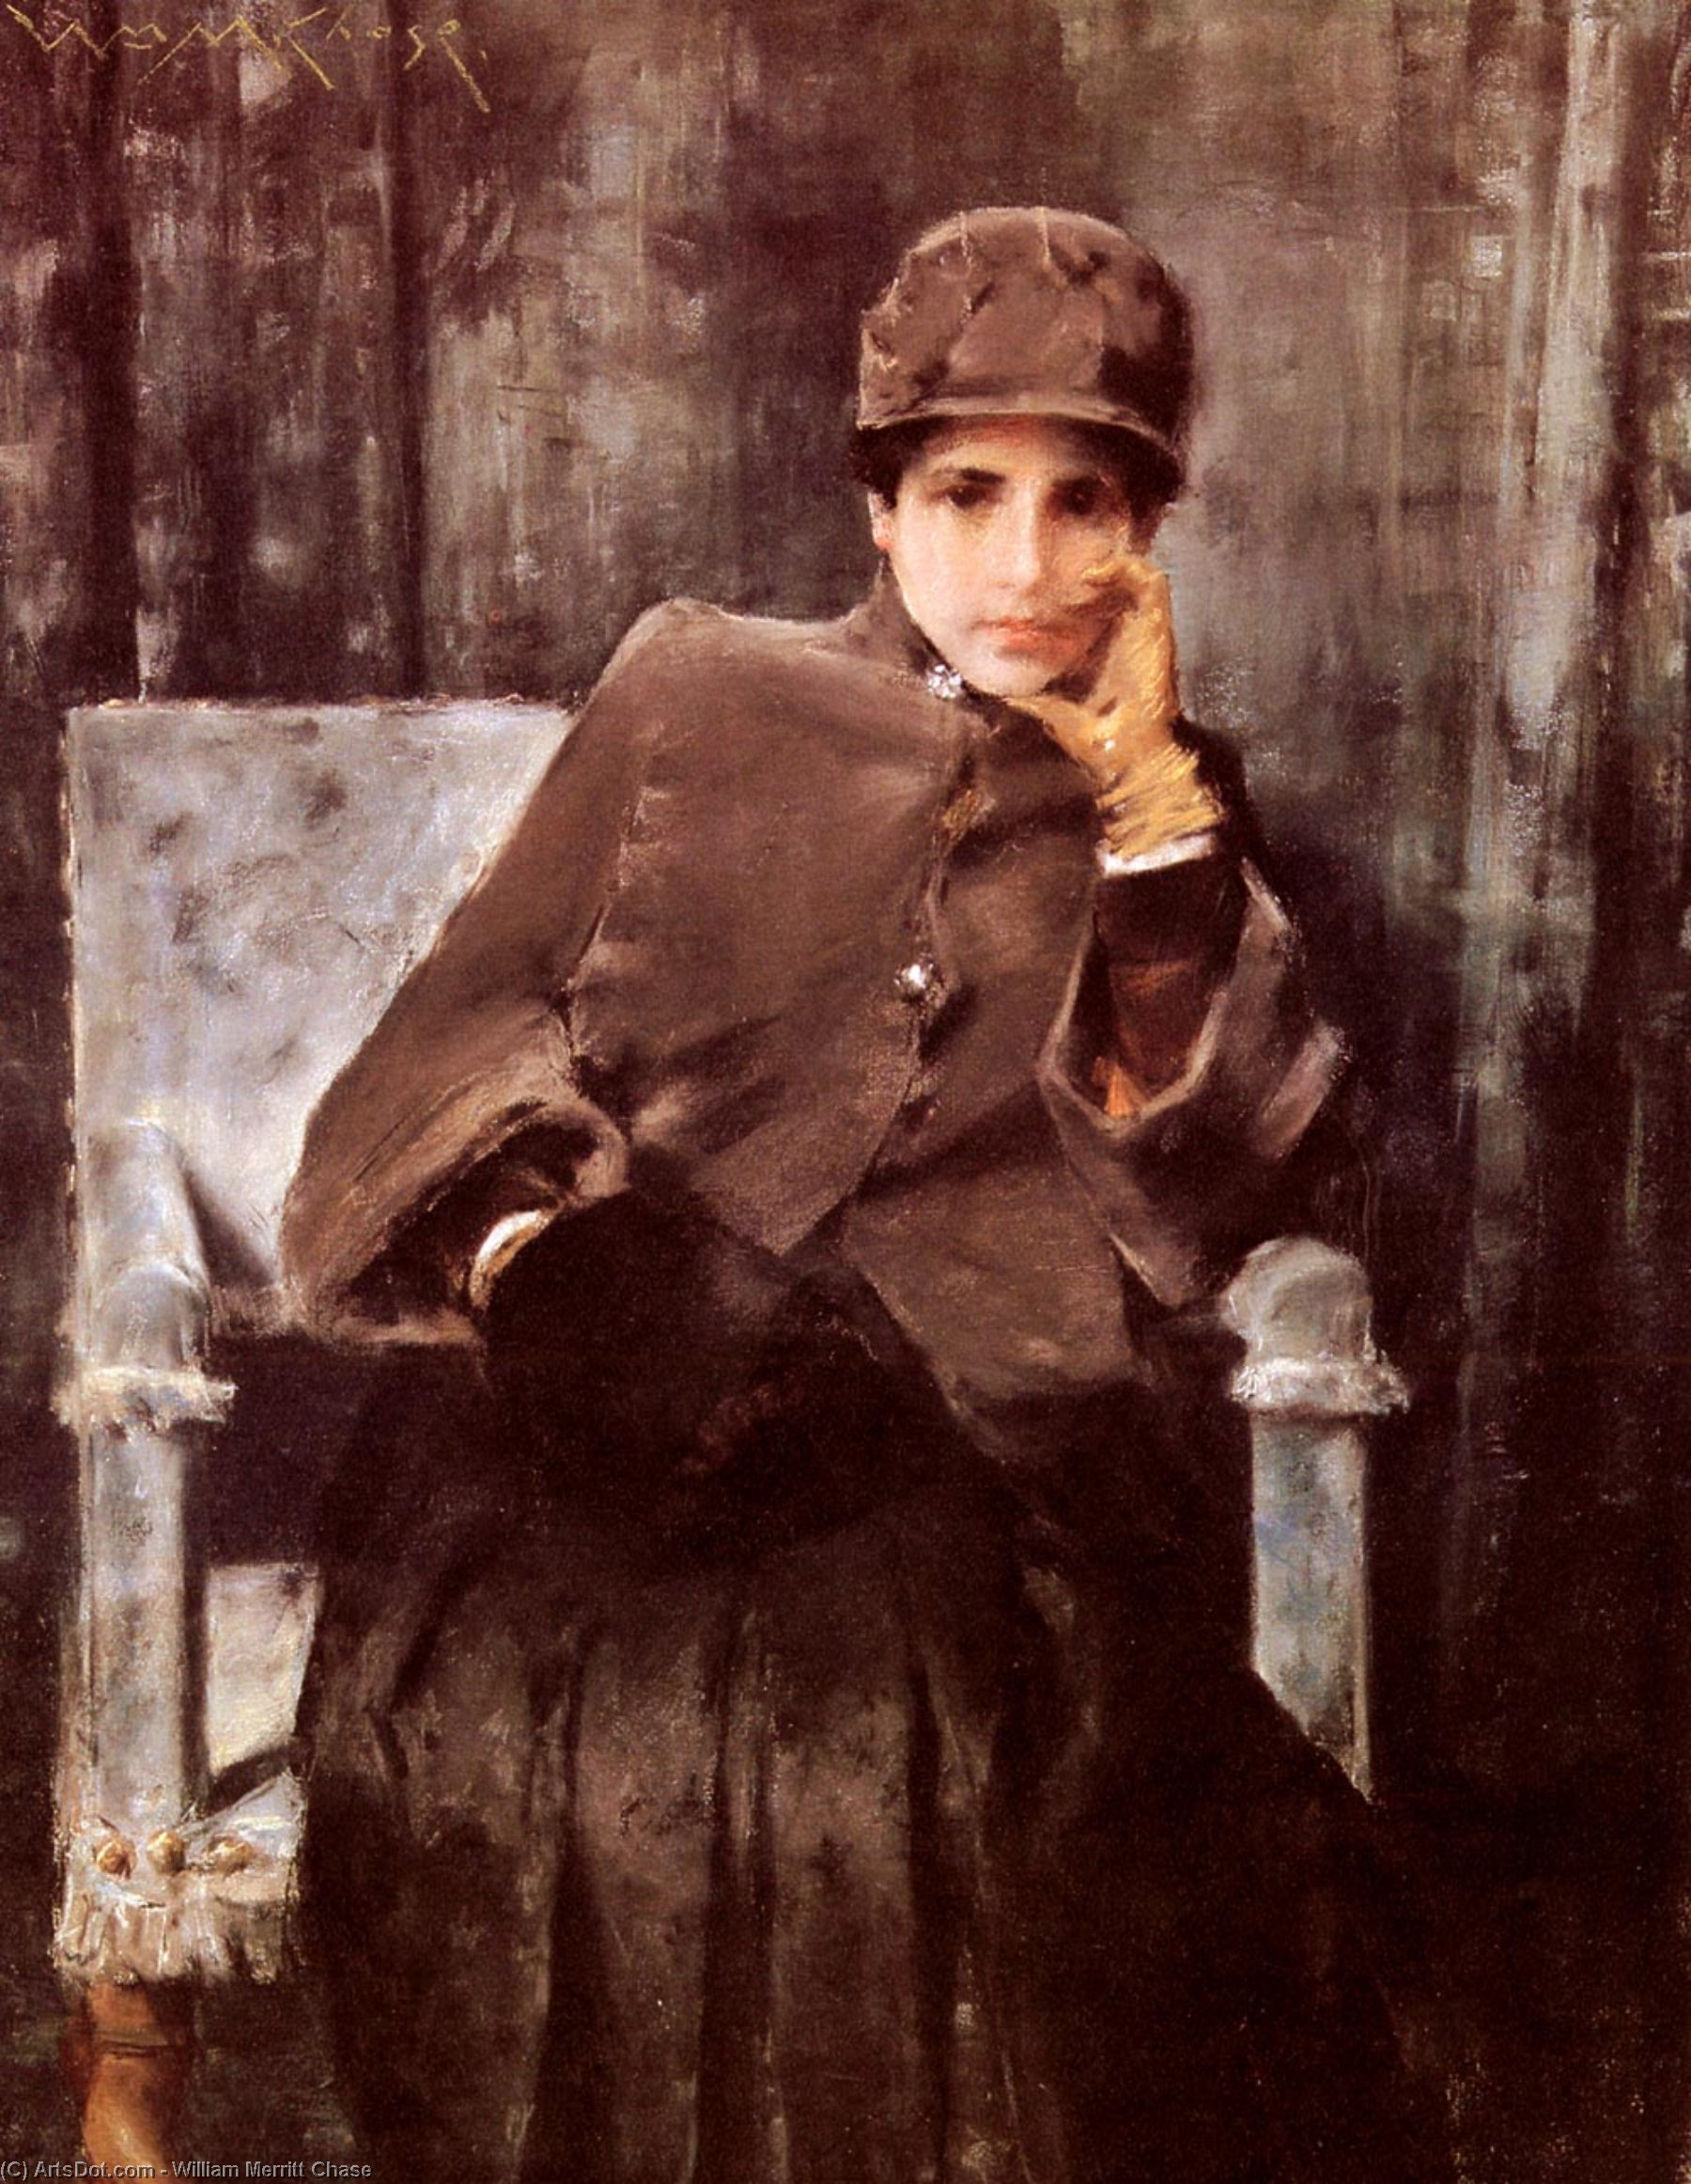 Медитация, холст, масло по William Merritt Chase (1849-1916, United States)